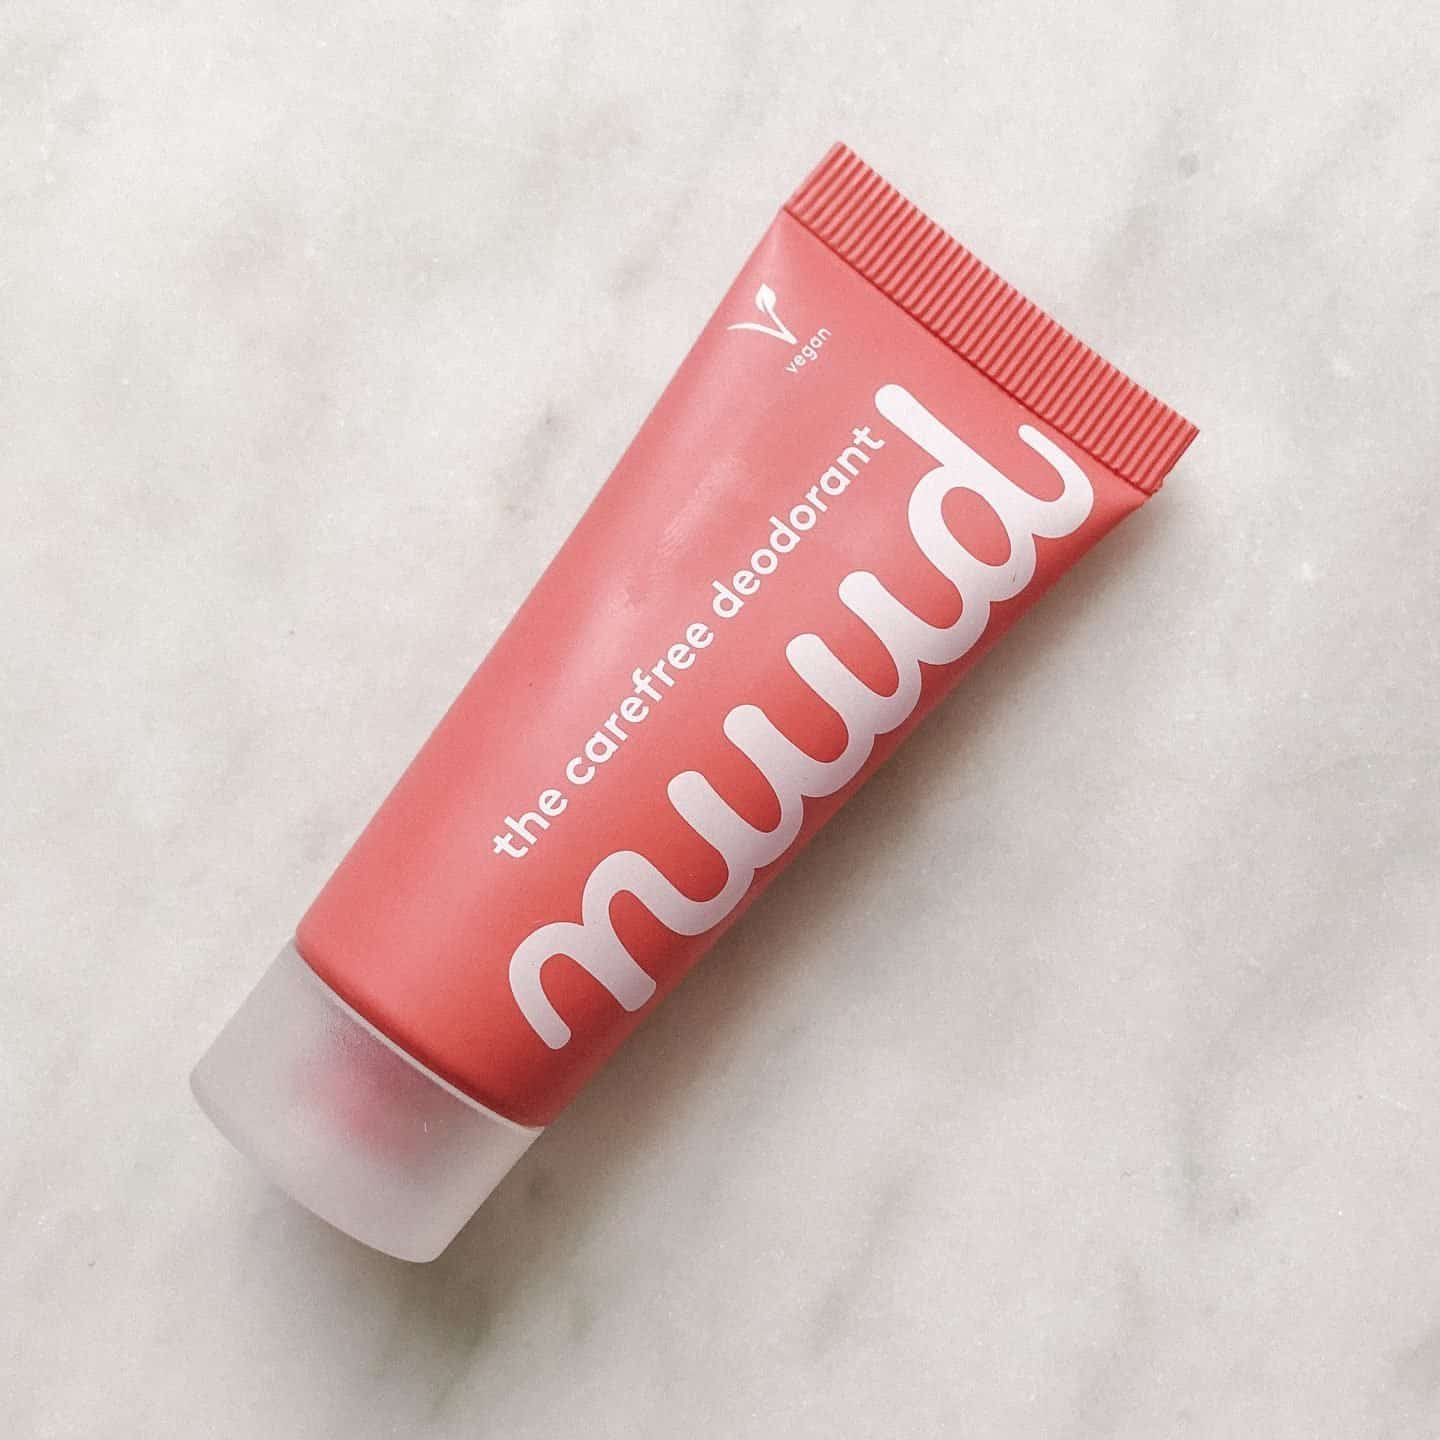 Nuud Zero Waste Natural Deodorant Review